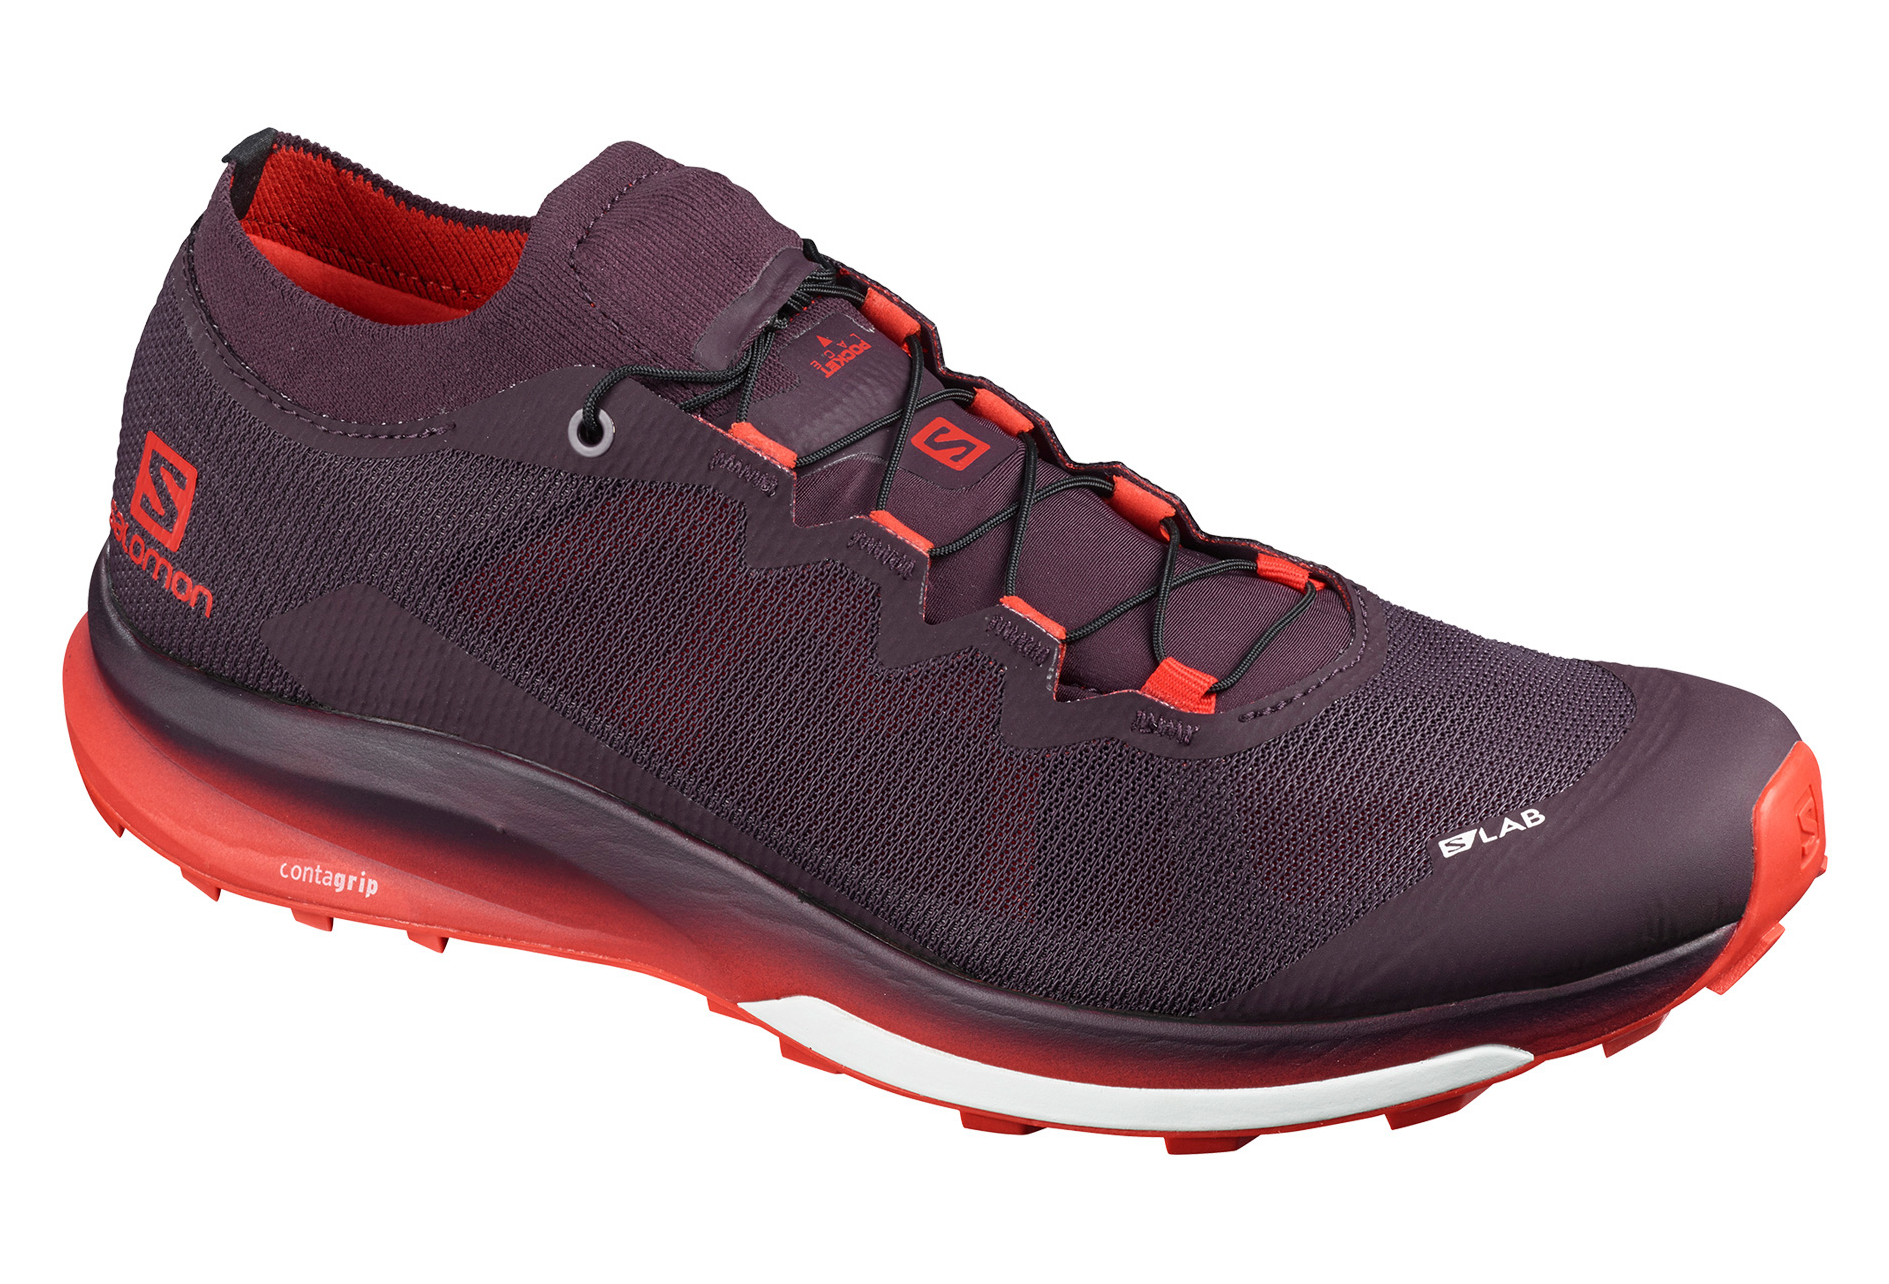 Salomon S / LAB Ultra 3 Trail Shoes Red